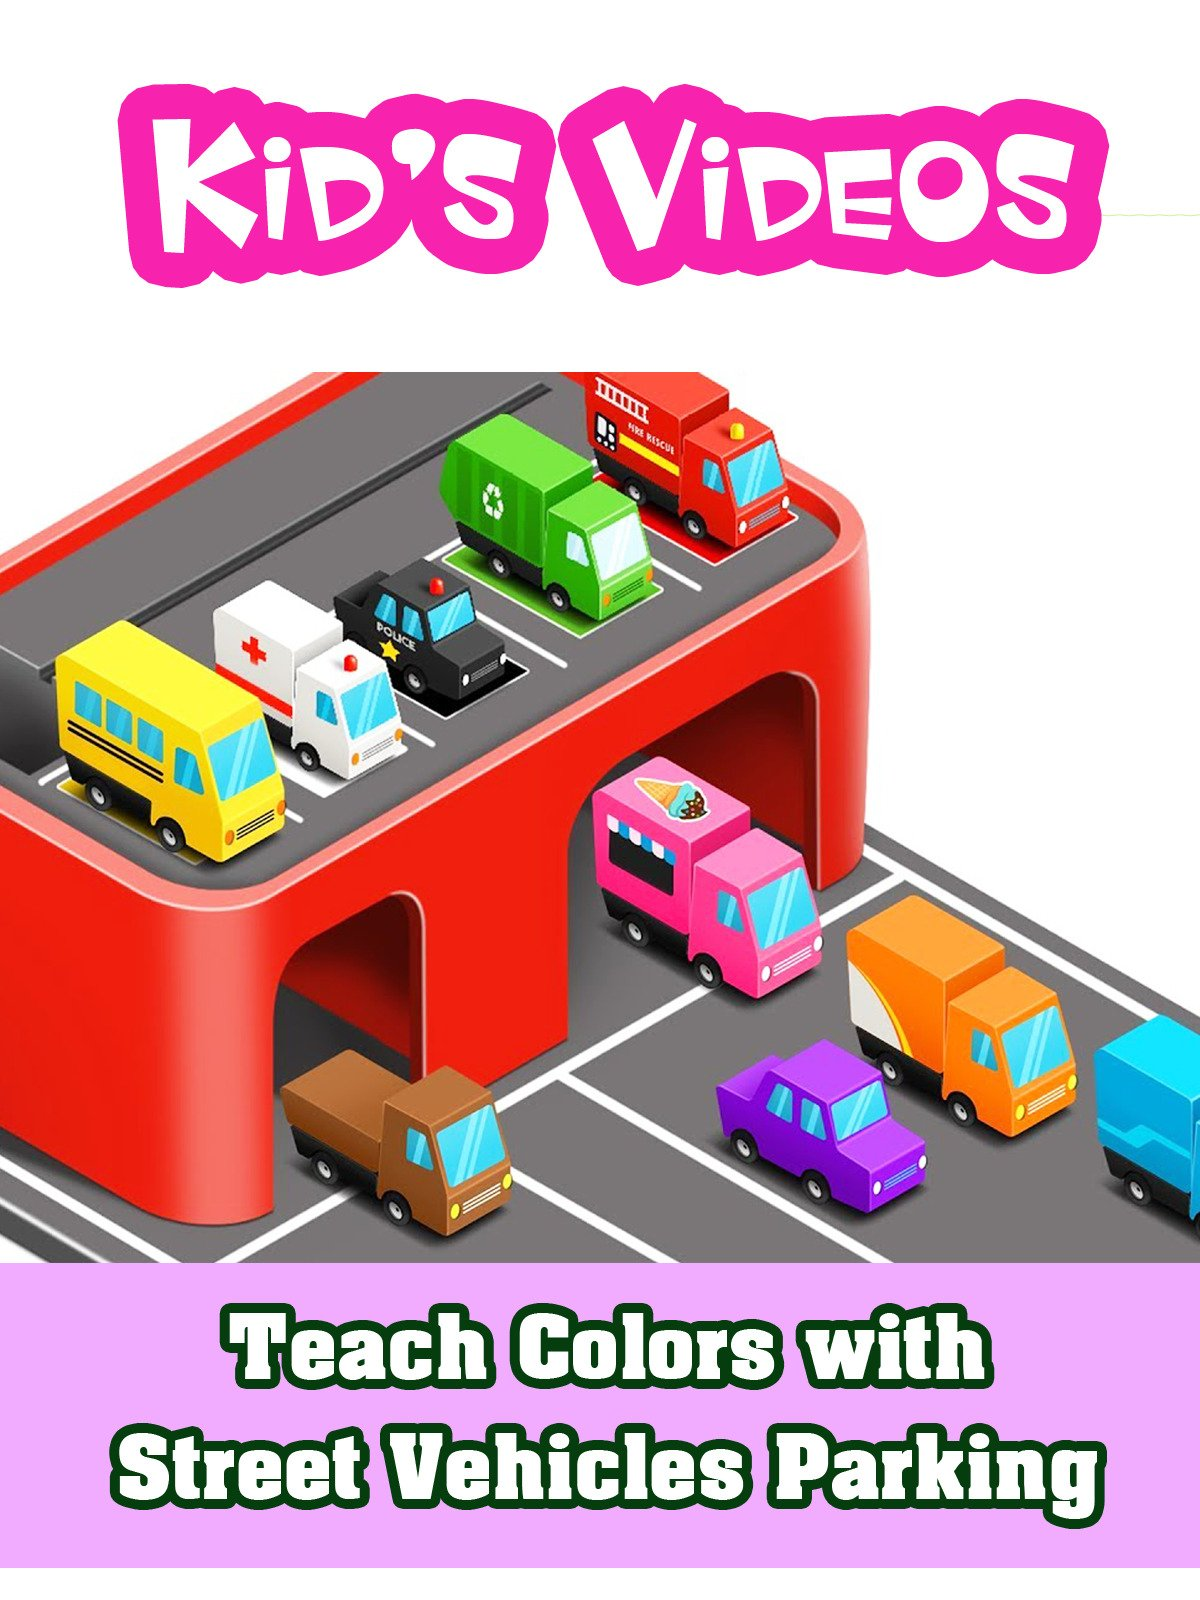 Teach Colors with Street Vehicles Parking